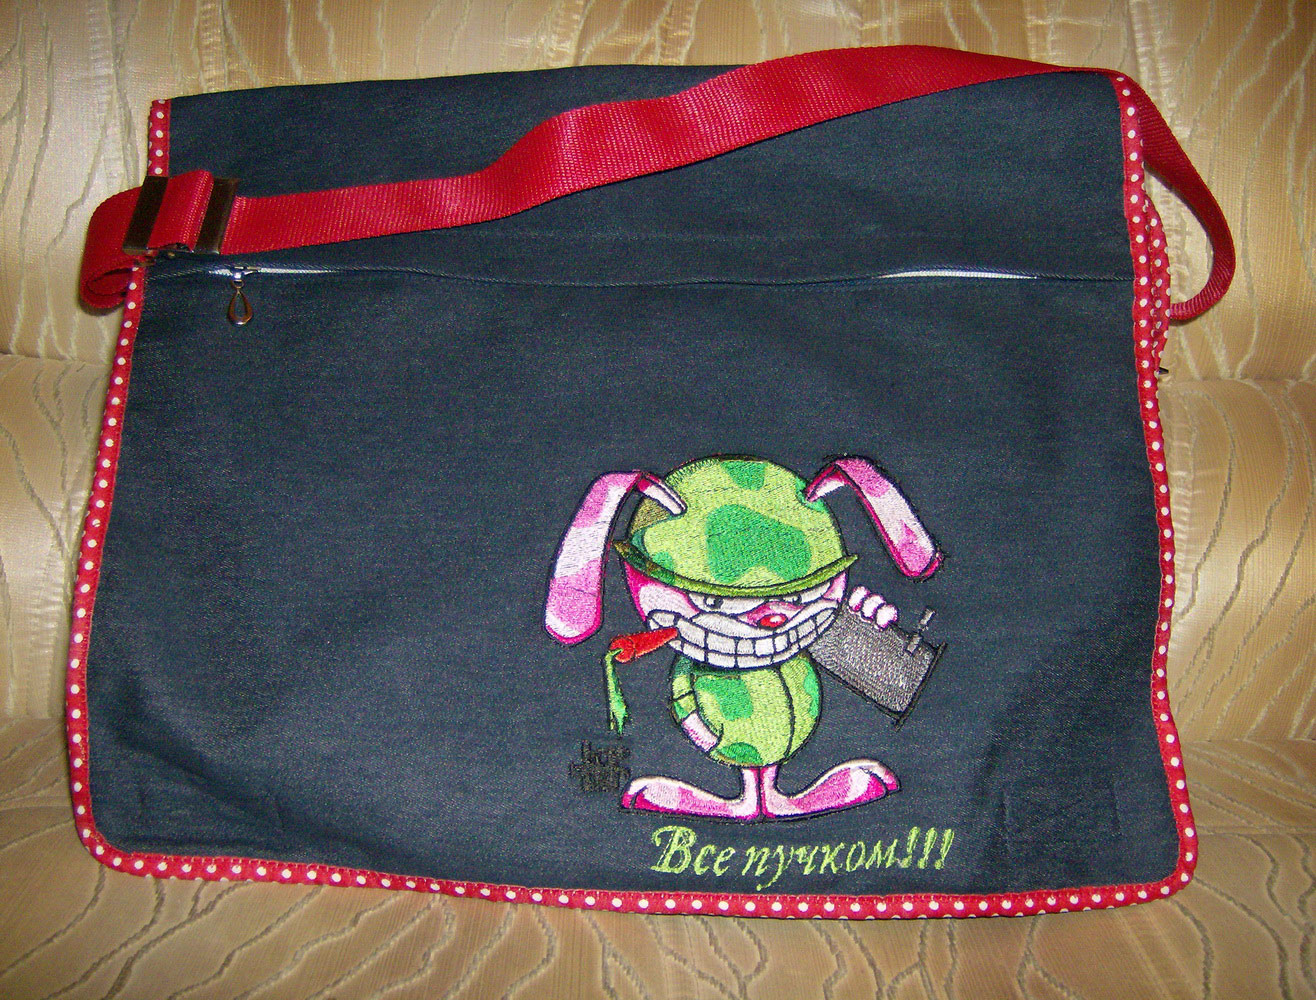 Stylish black bag embroidered with rabbit design